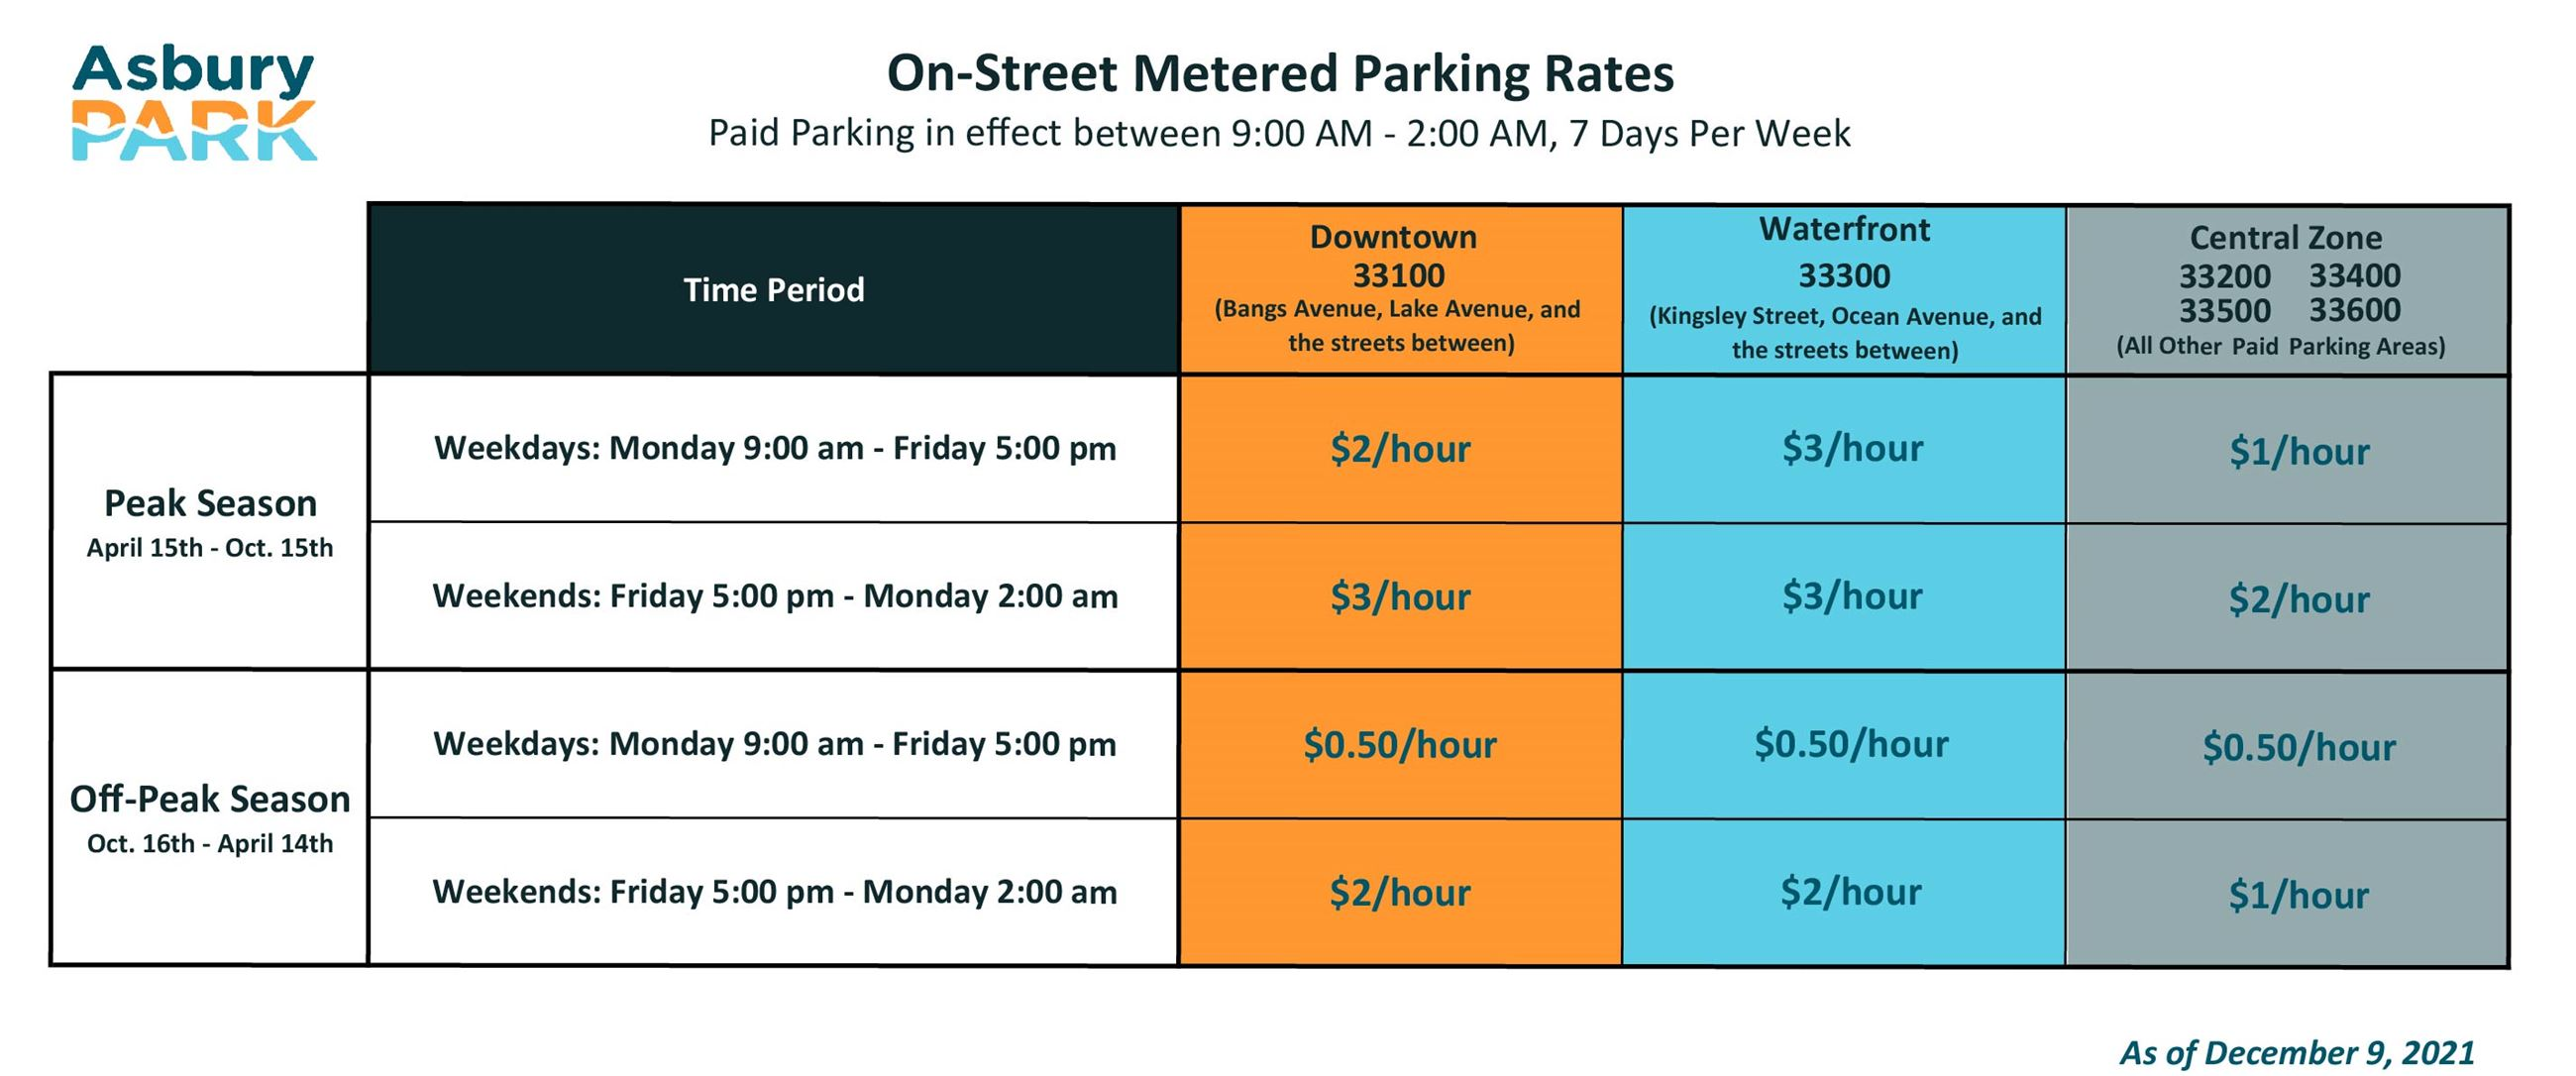 On-Street Metered Parking Rates